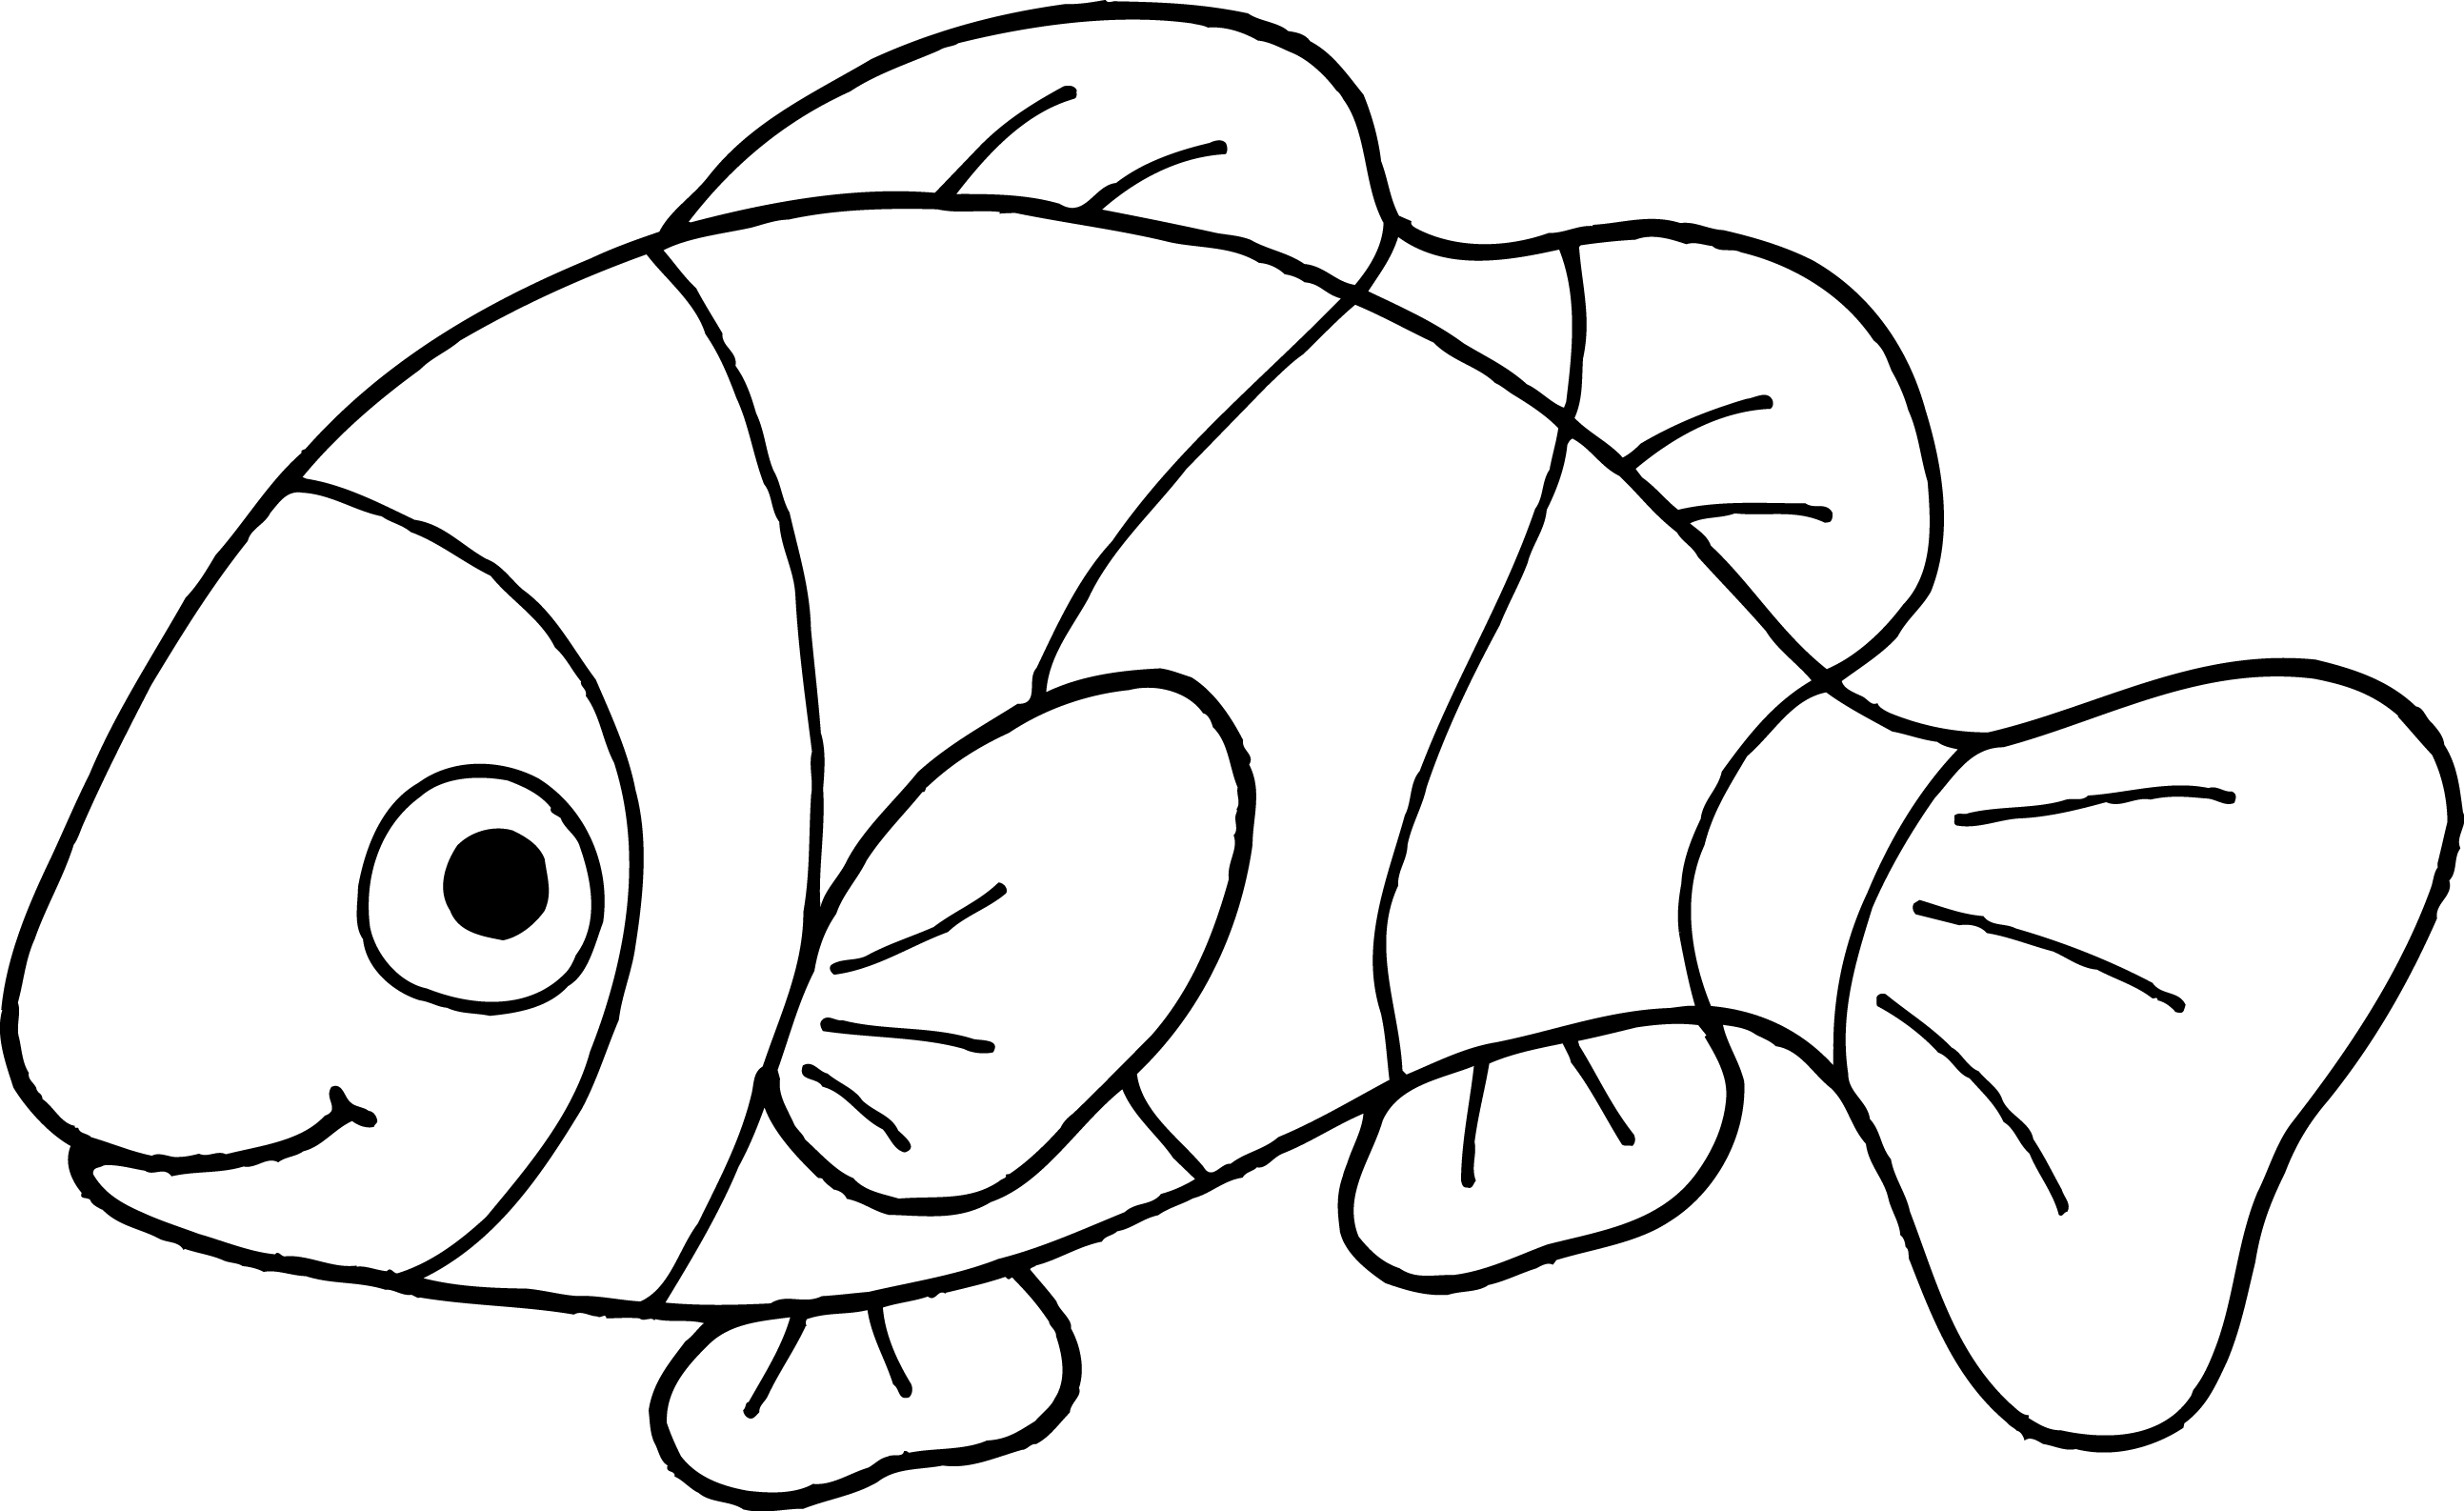 Simple Fish Clip Art | Clipart Panda - Free Clipart Images